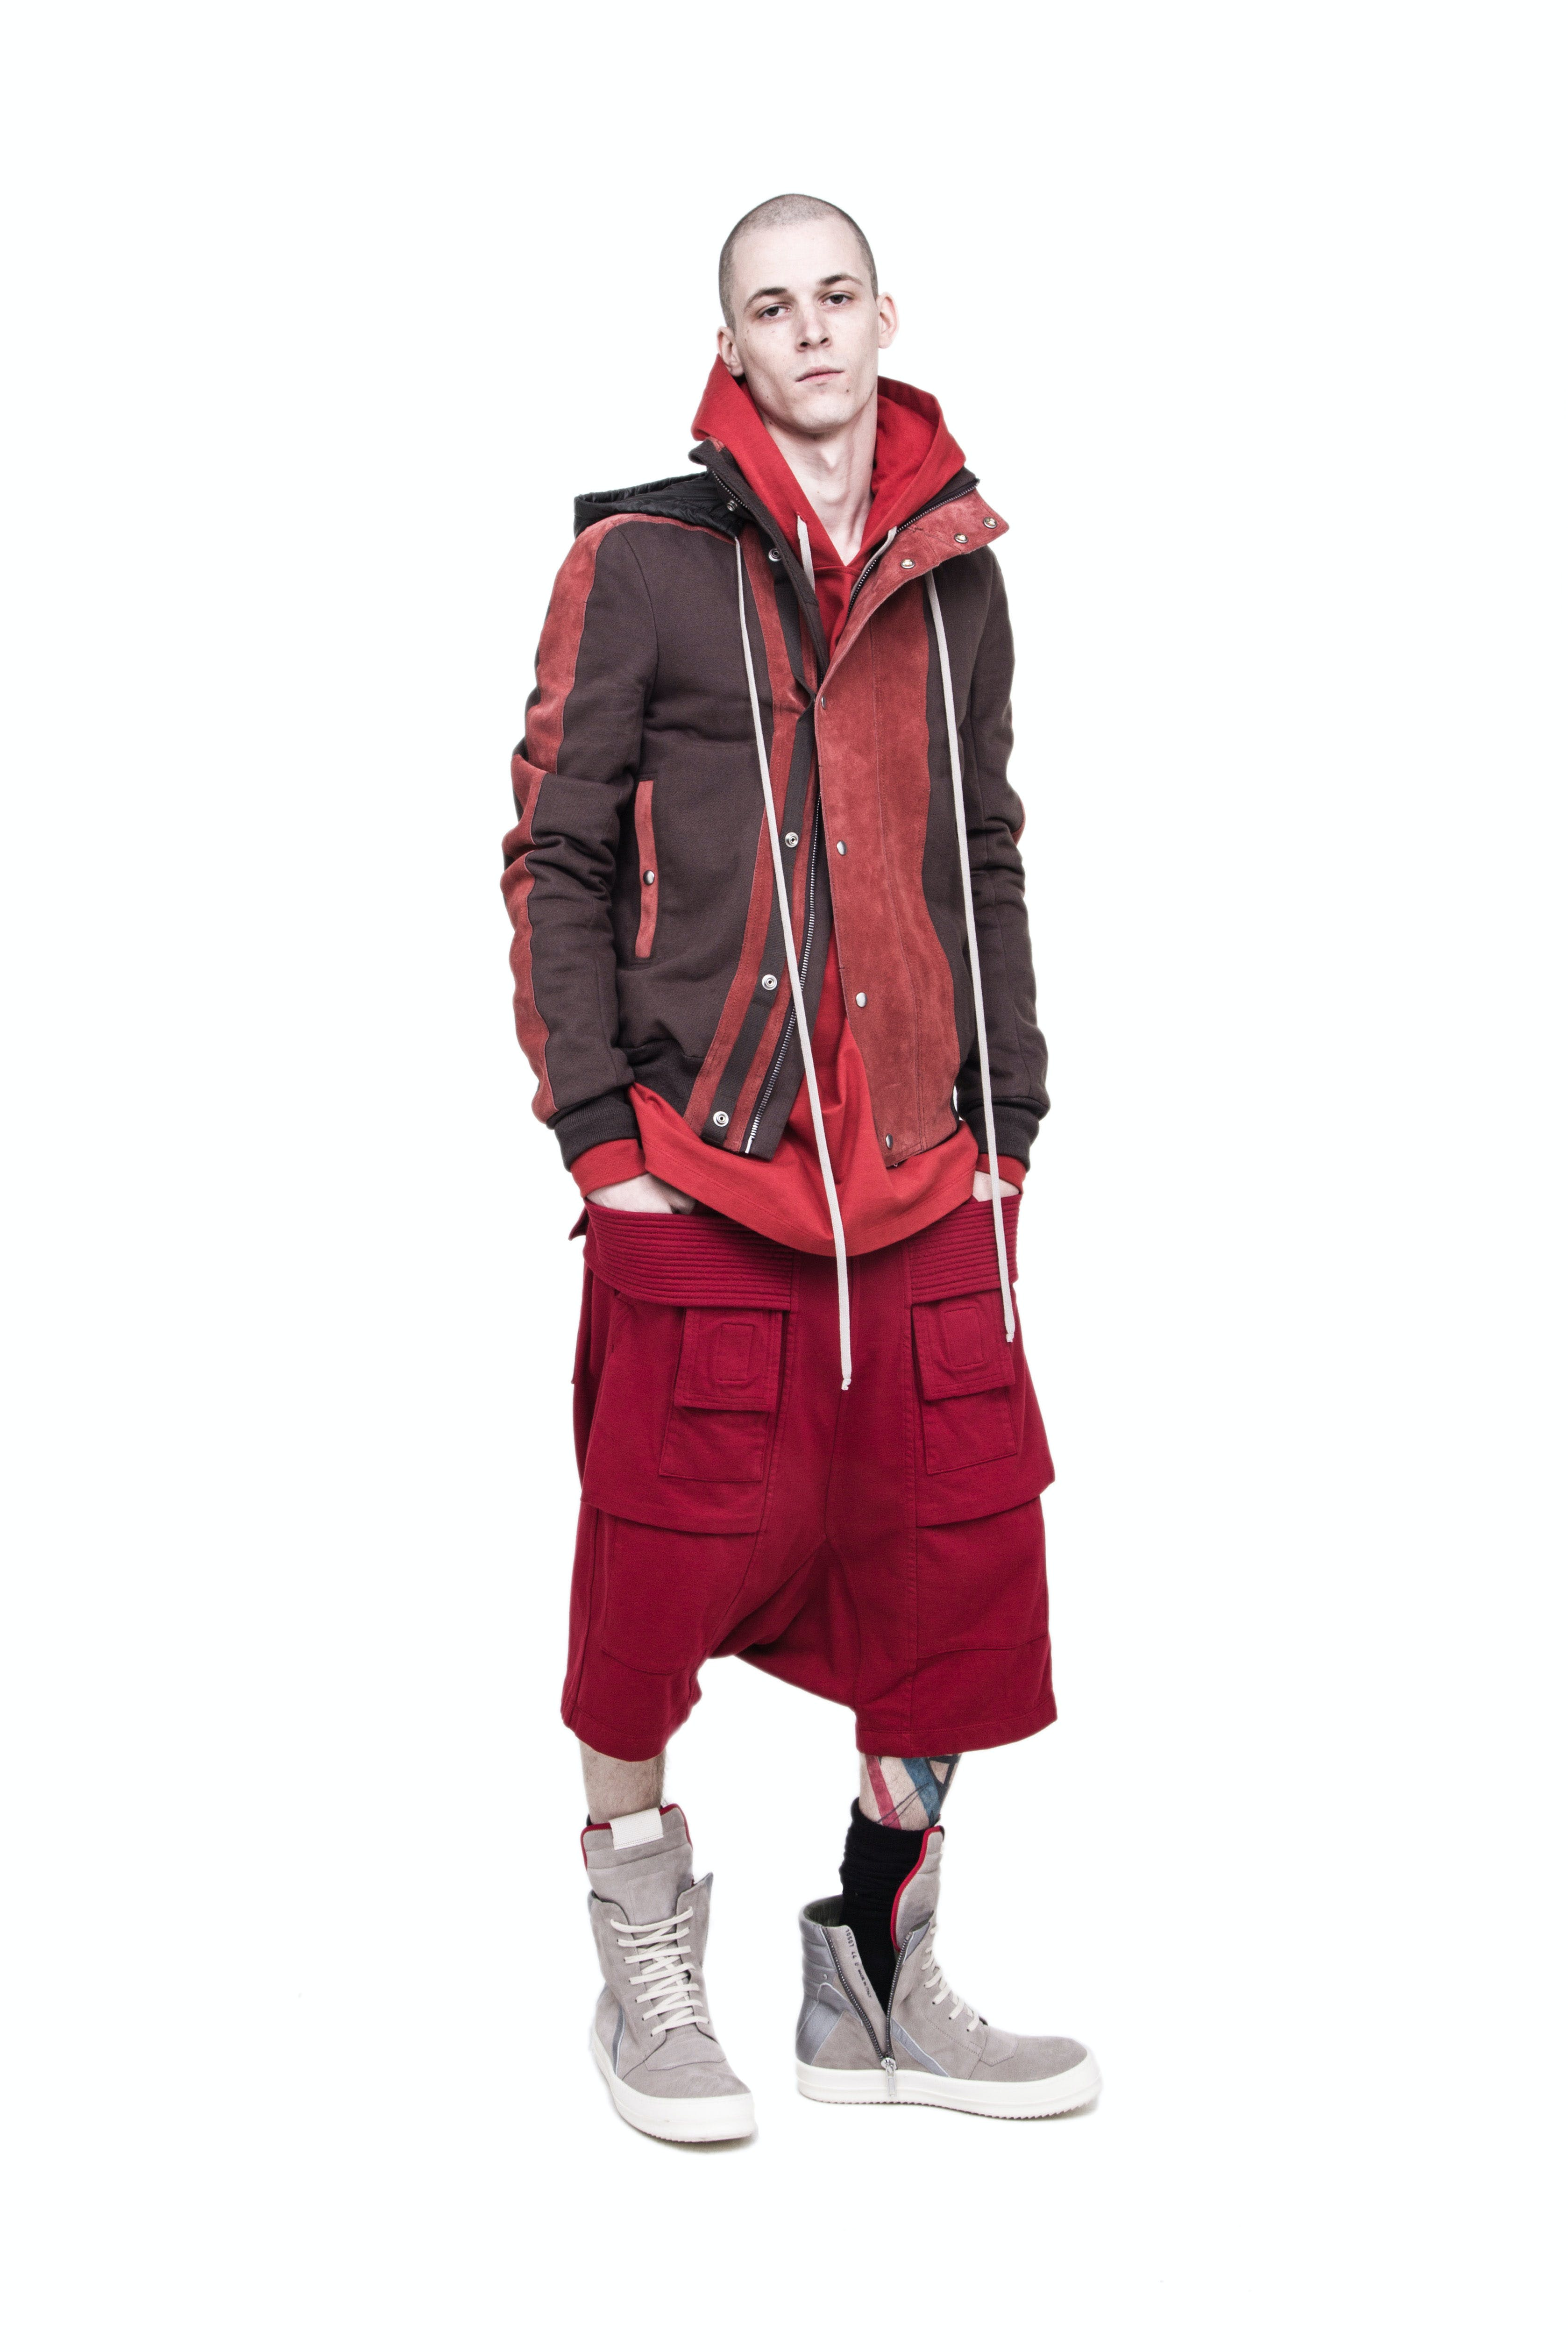 Rick Owens Campaign Multi Colored Zip Up Drawstring Jacket Zip Up Hoodie Creatch Pods in Red Geobasket High Top Sneakers In Grey Mens SS19 Babel